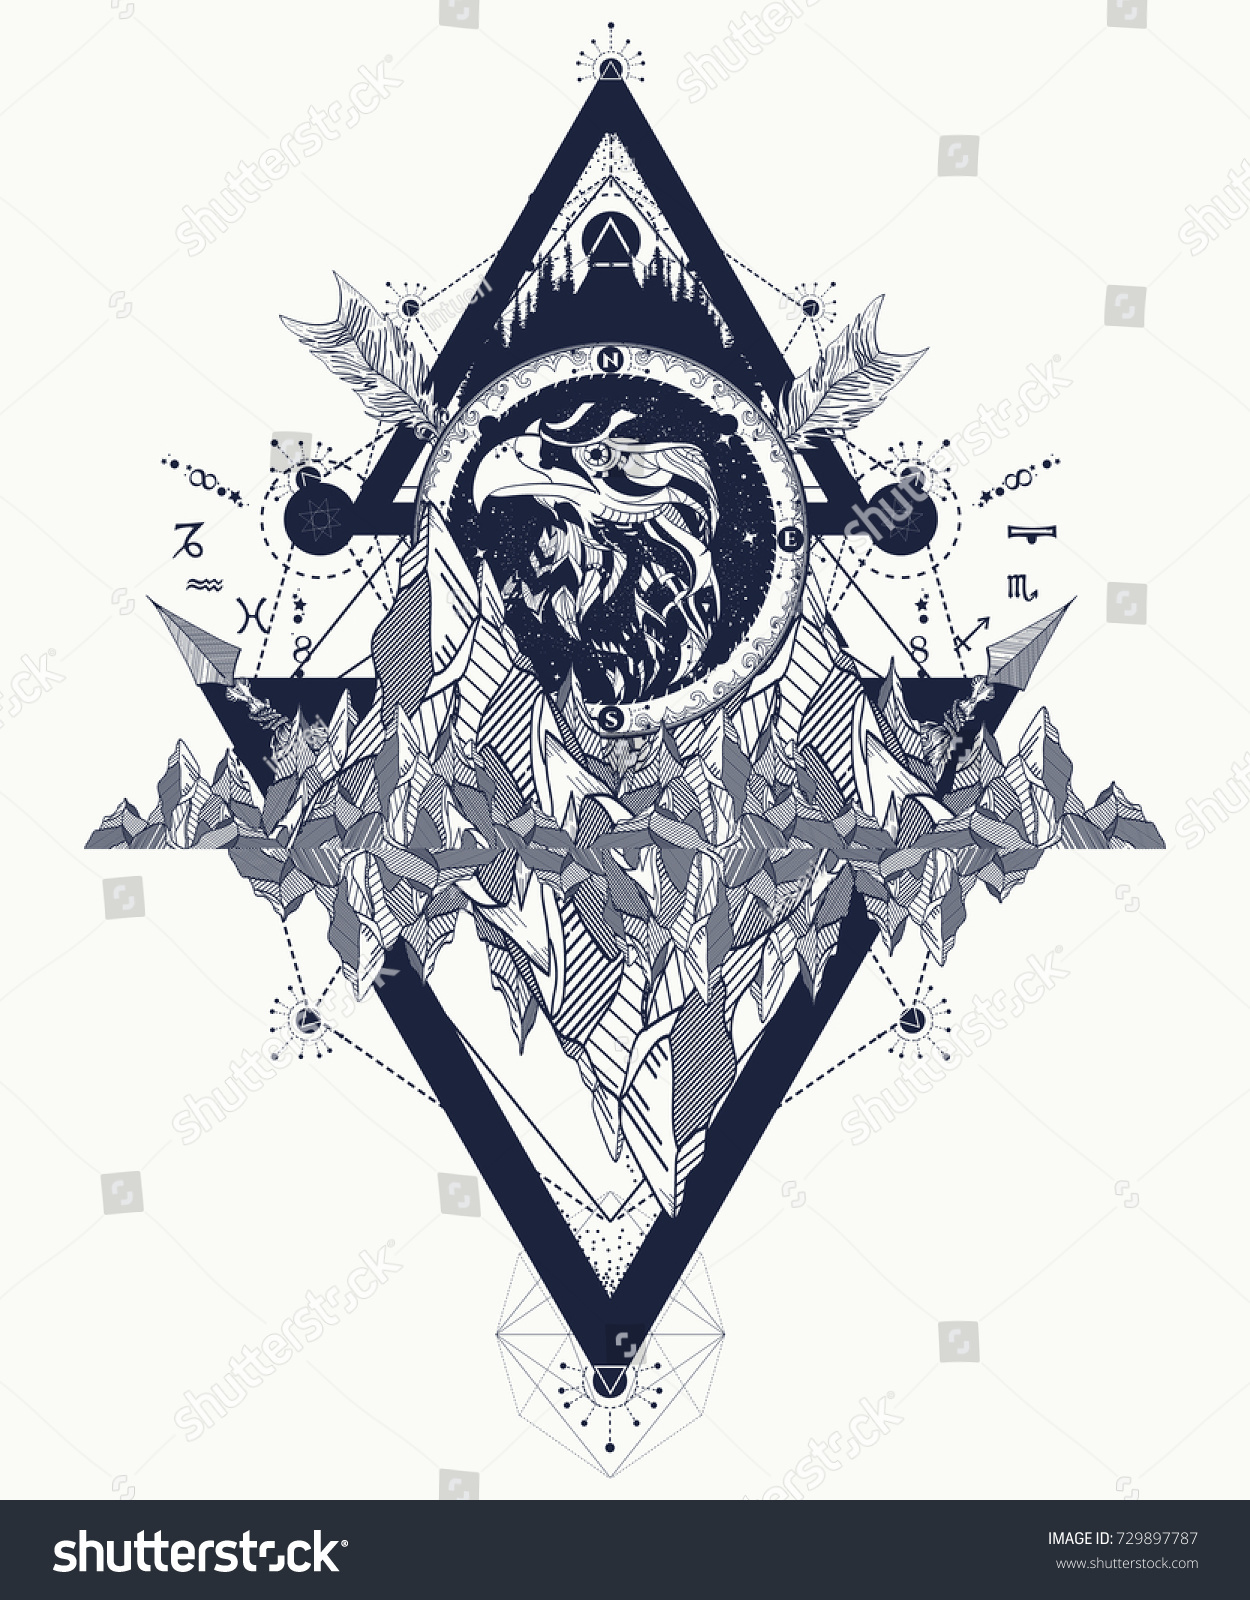 Eagle Tattoo Art Mountains Crossed Arrows Stock Vector Royalty Free